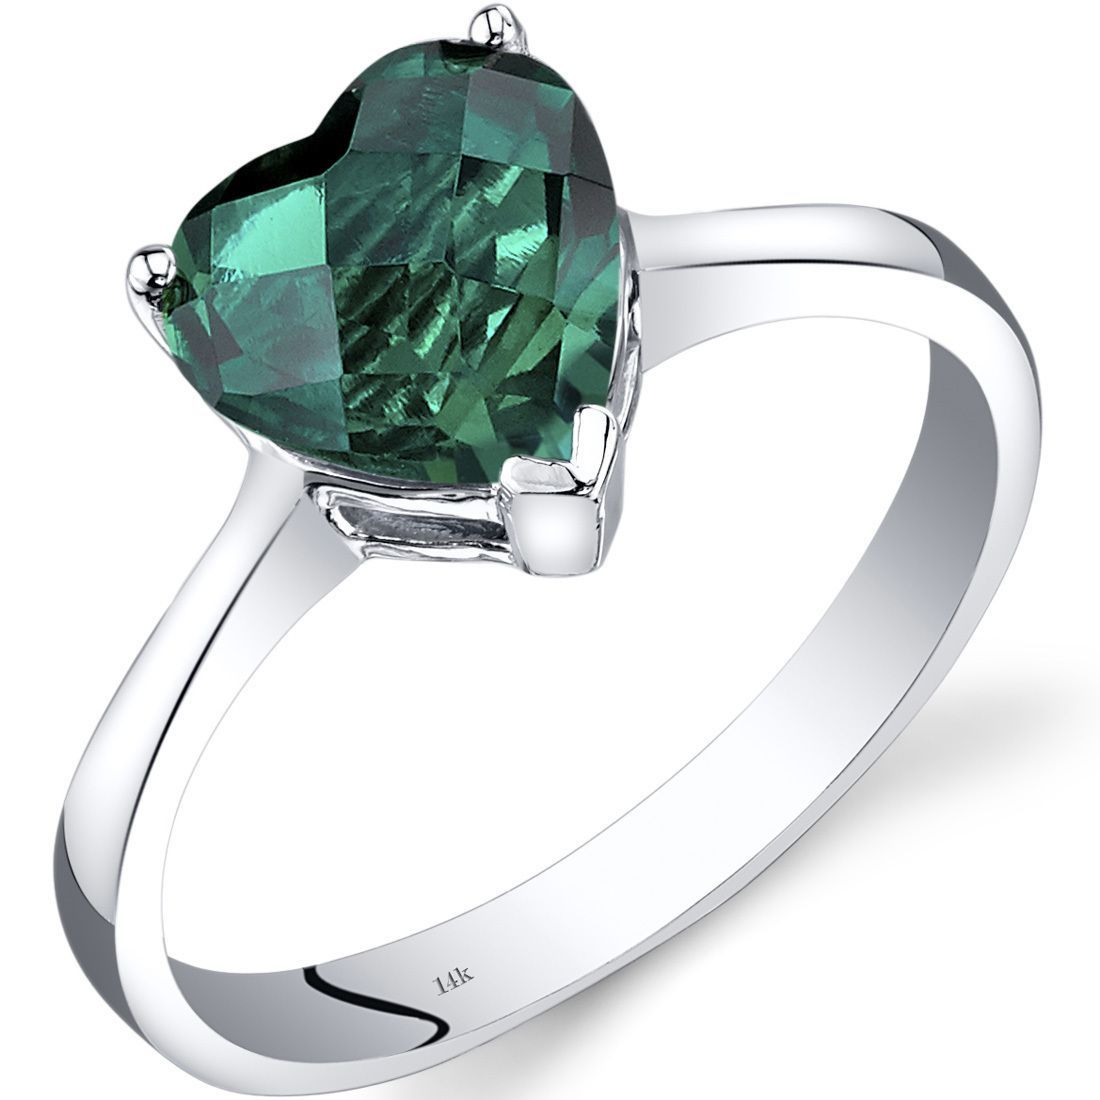 Oravo 14k White Gold 1 1/2ct TGW Created Emerald Heart Solitaire Ring (Size 7), Green